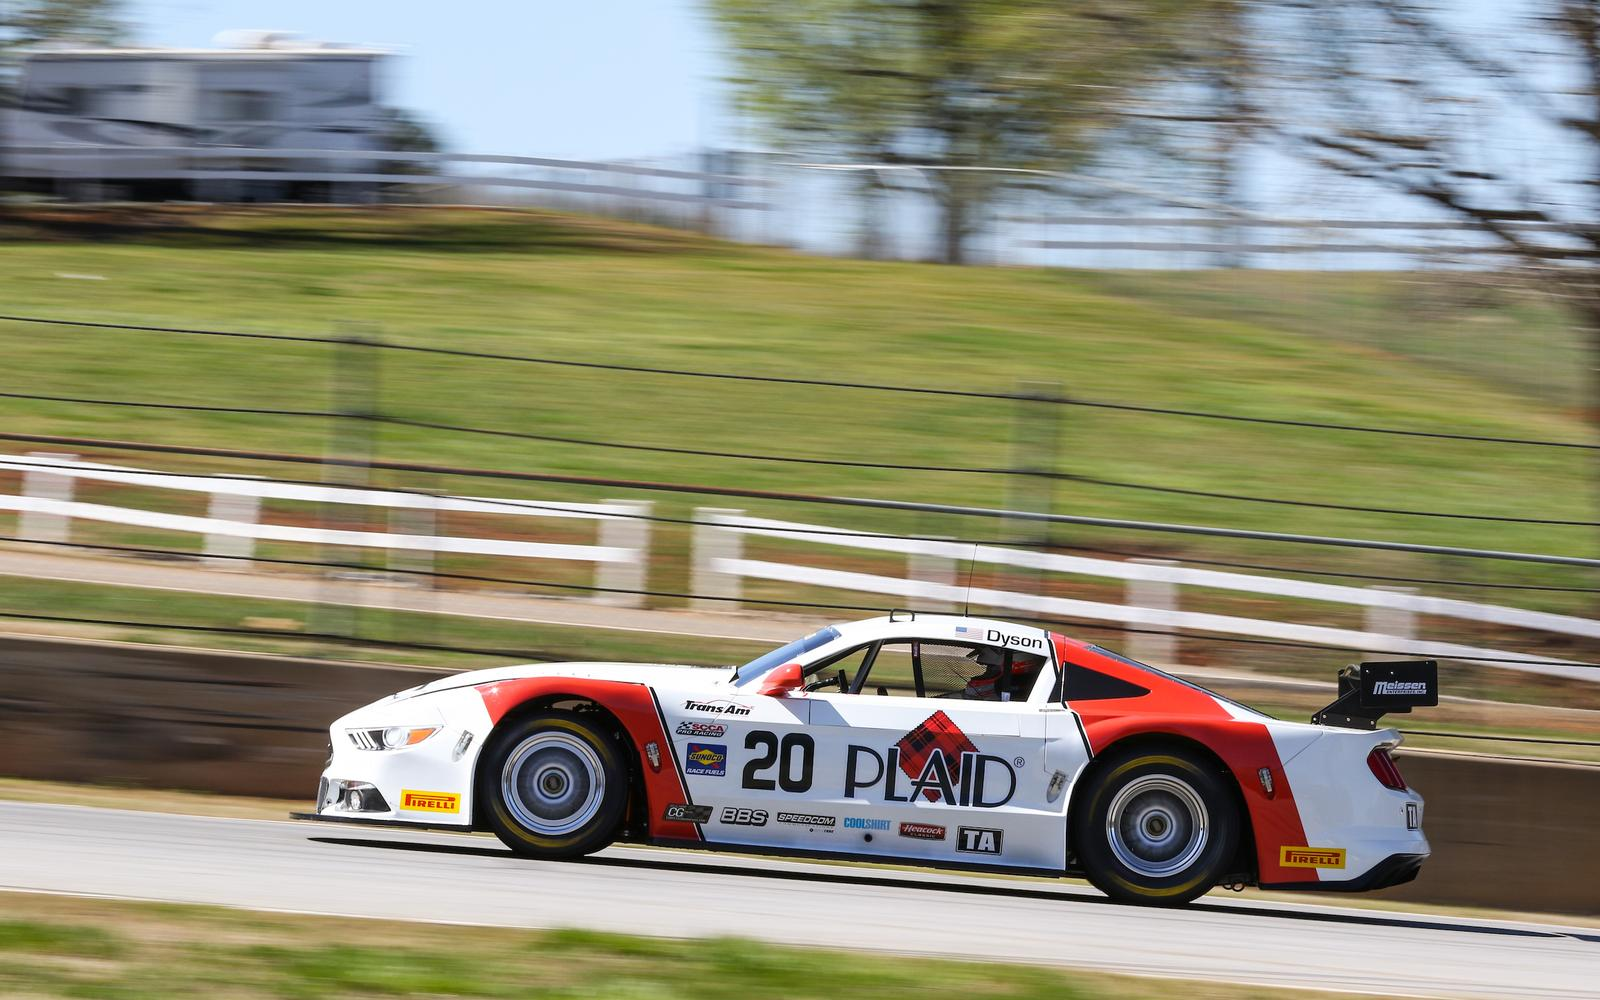 Dyson Drives Plaid Mustang to Hard-Fought Road Atlanta Win